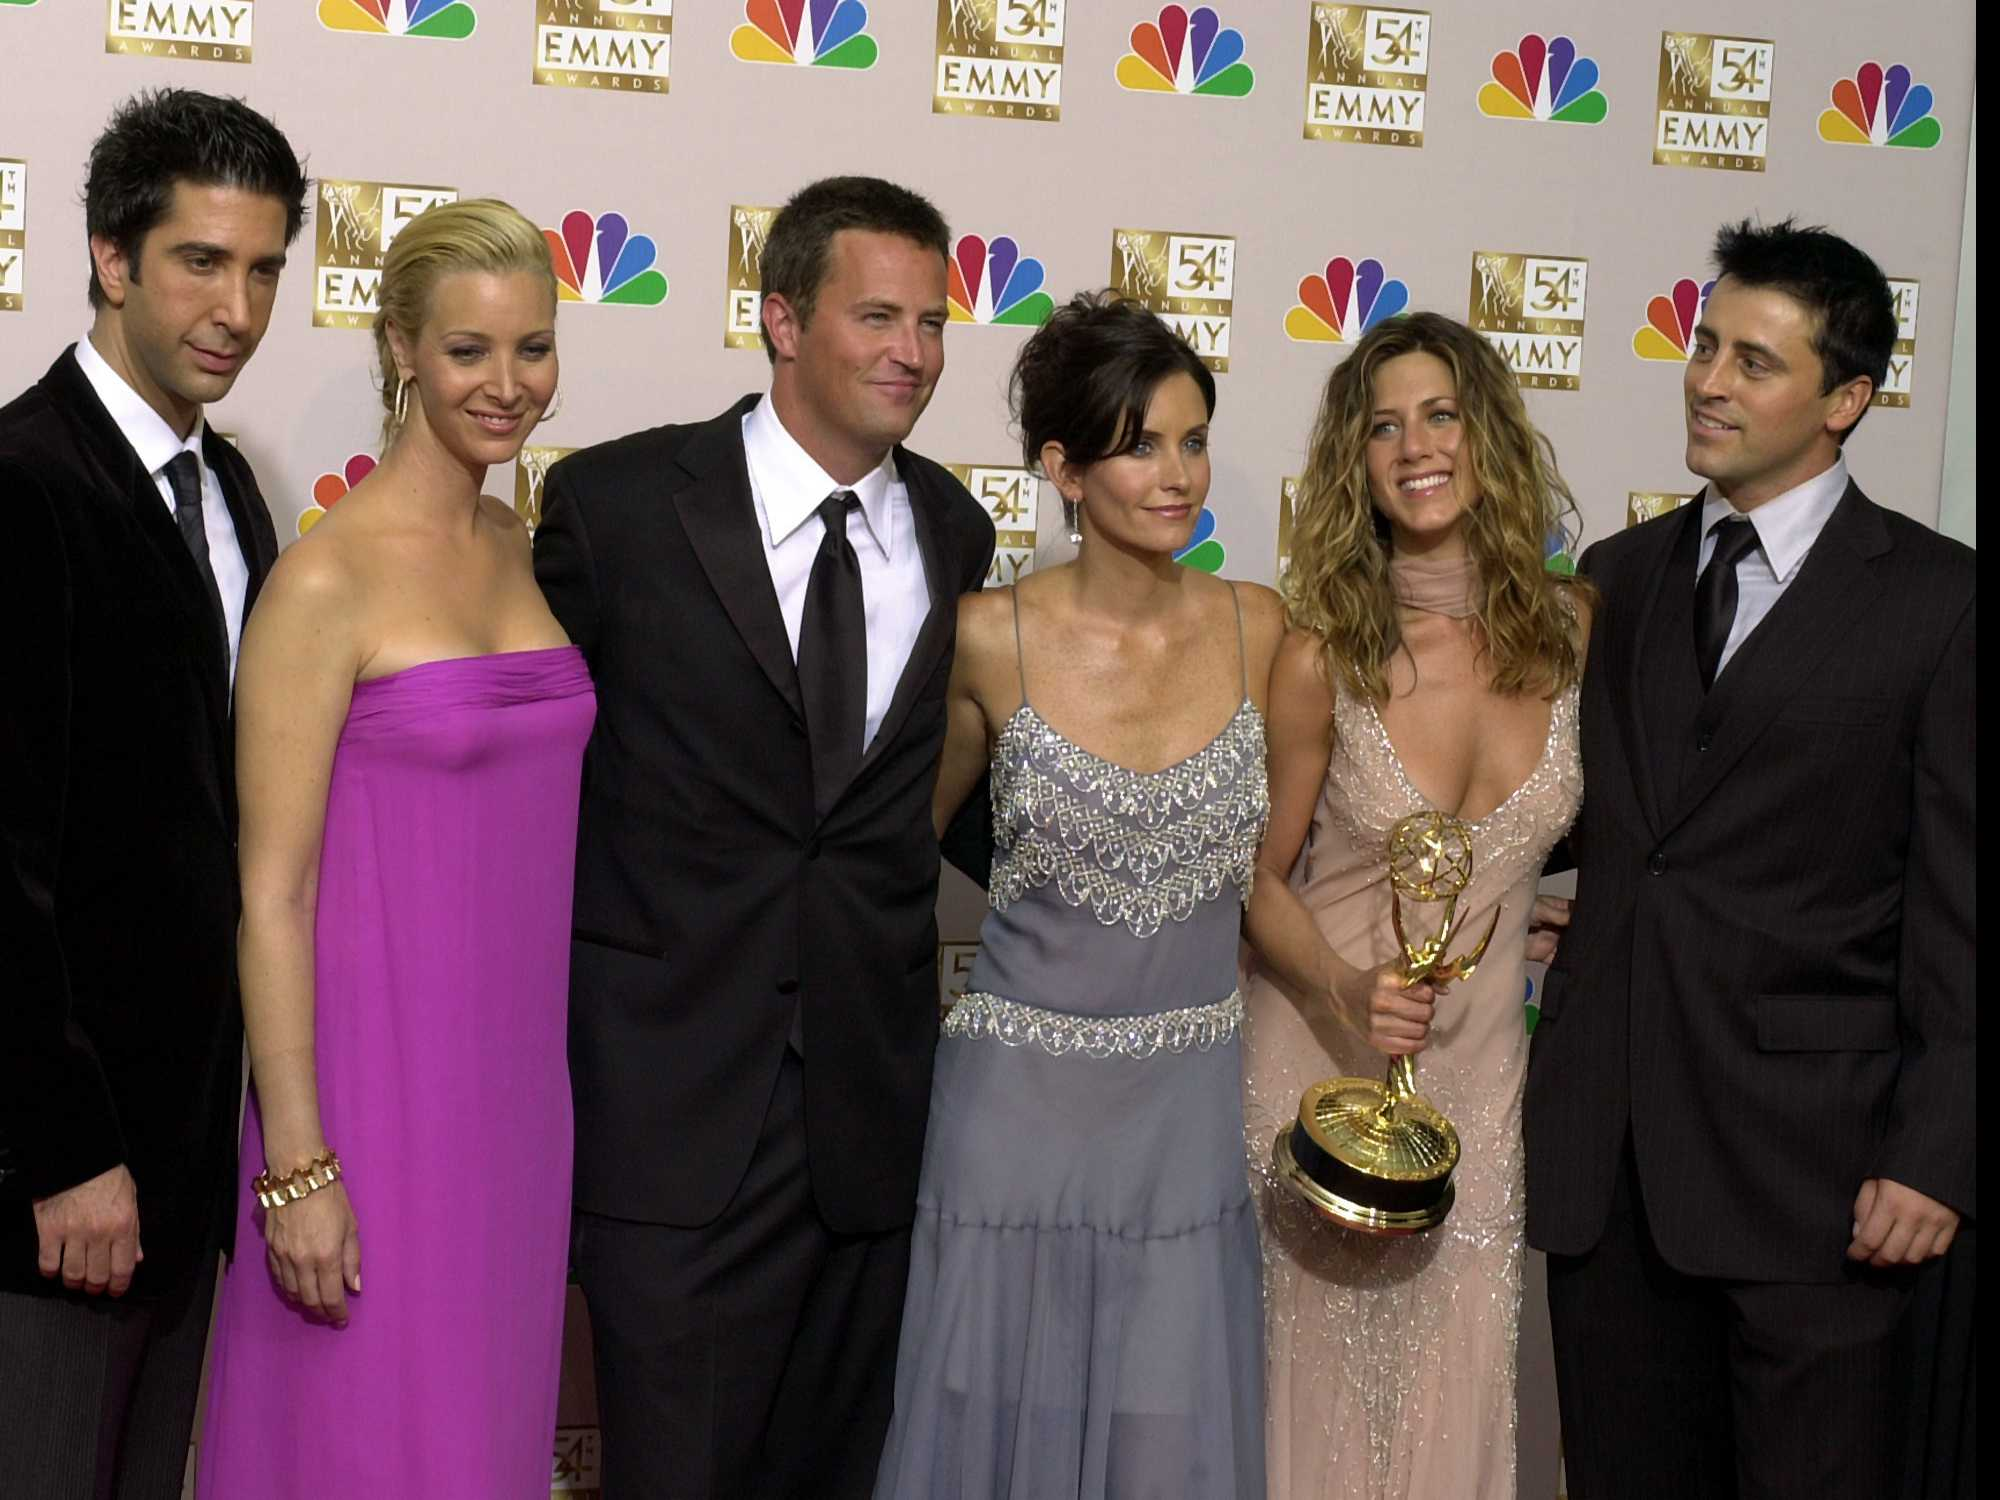 Still there for You: 'Friends' Most-Viewed UK Streaming Show